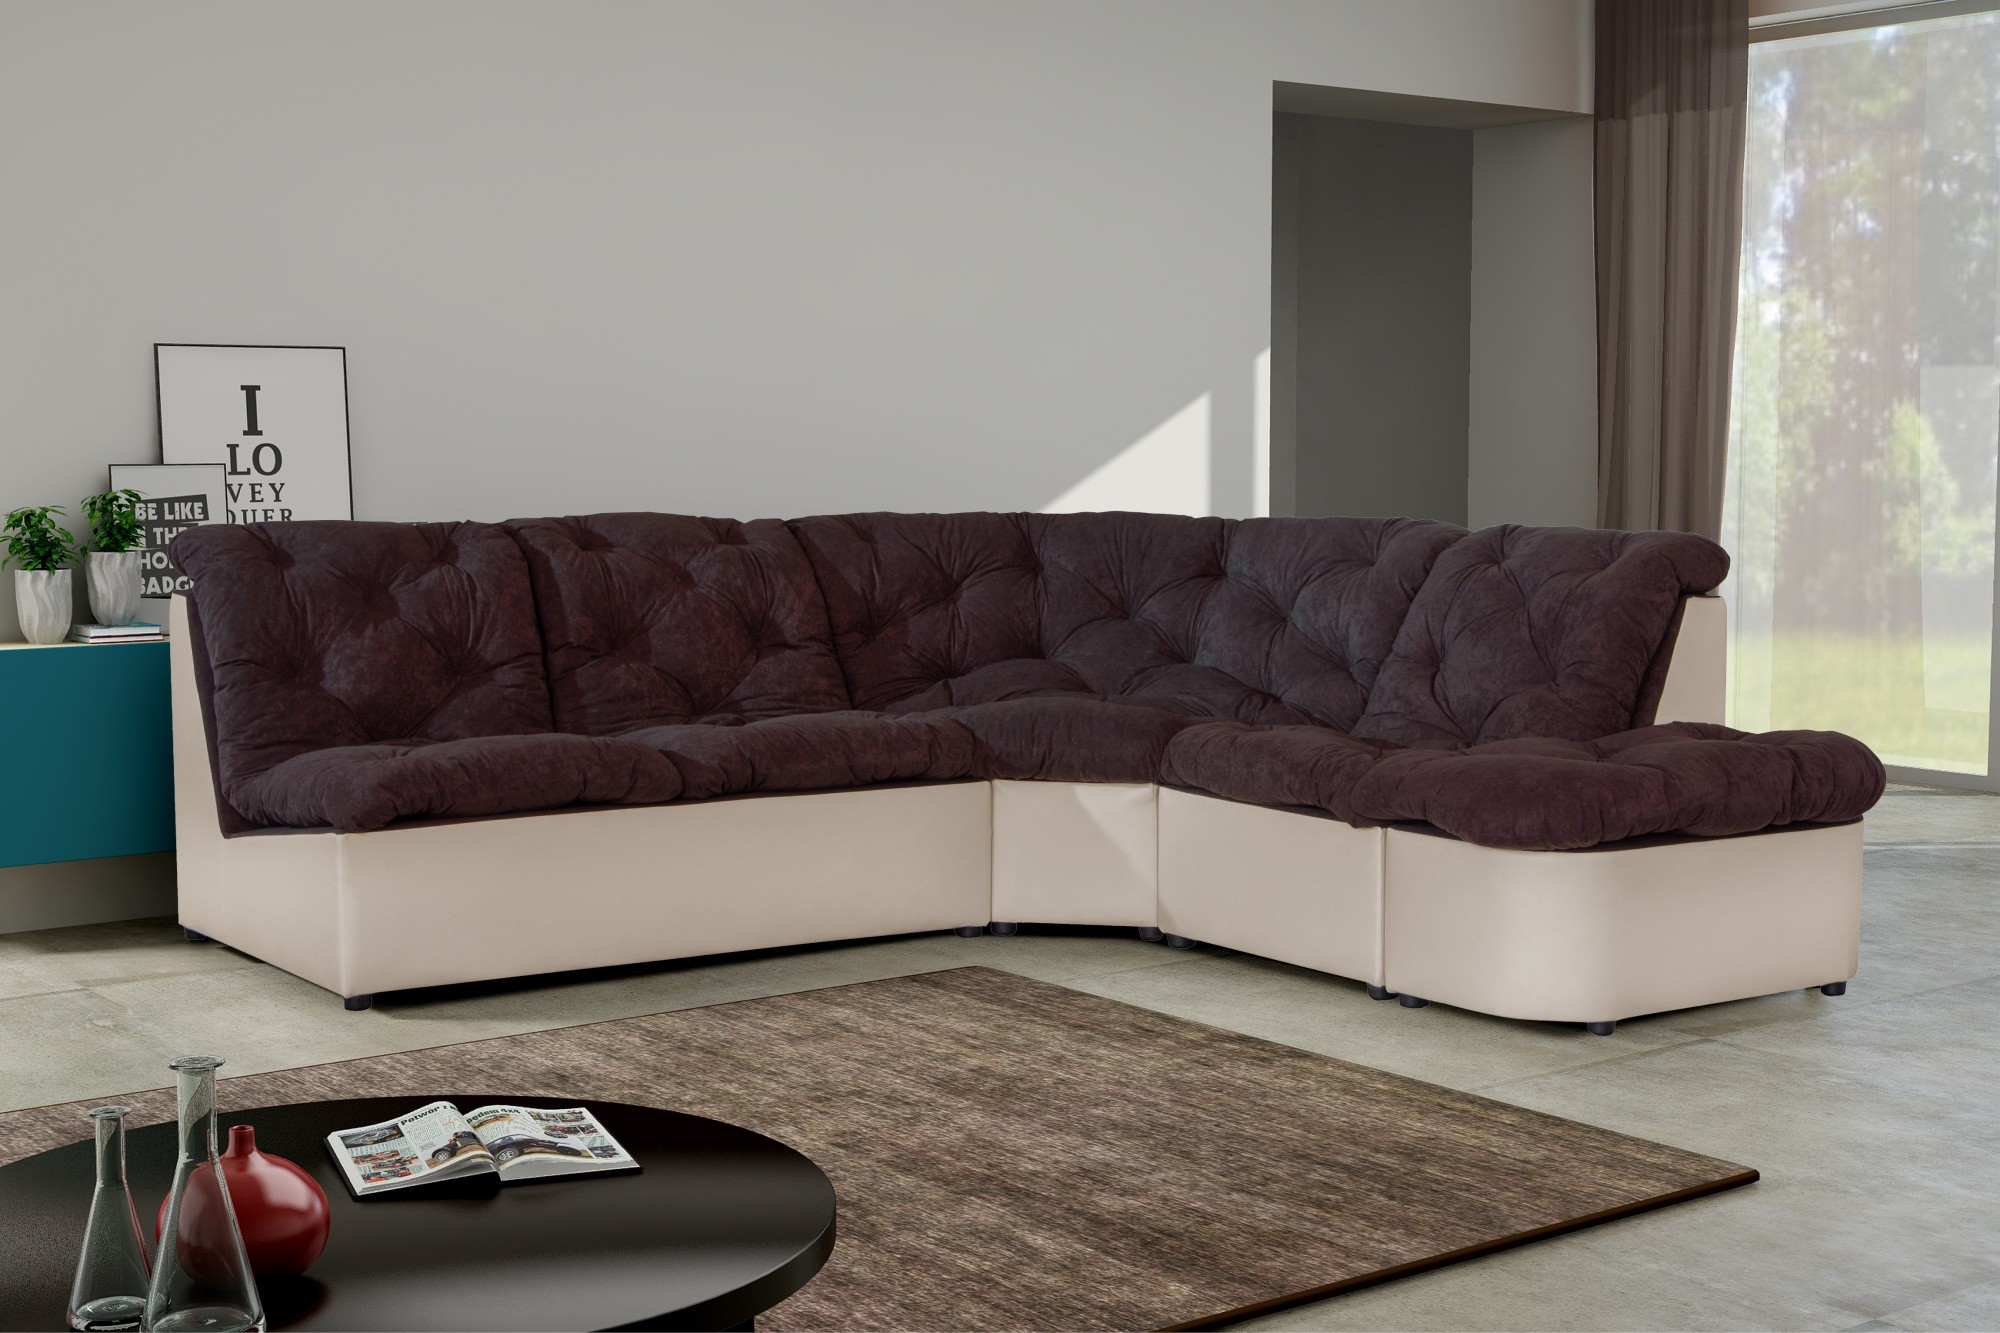 Canap d angle chocolat royal sofa id e de canap et for Meuble de canape